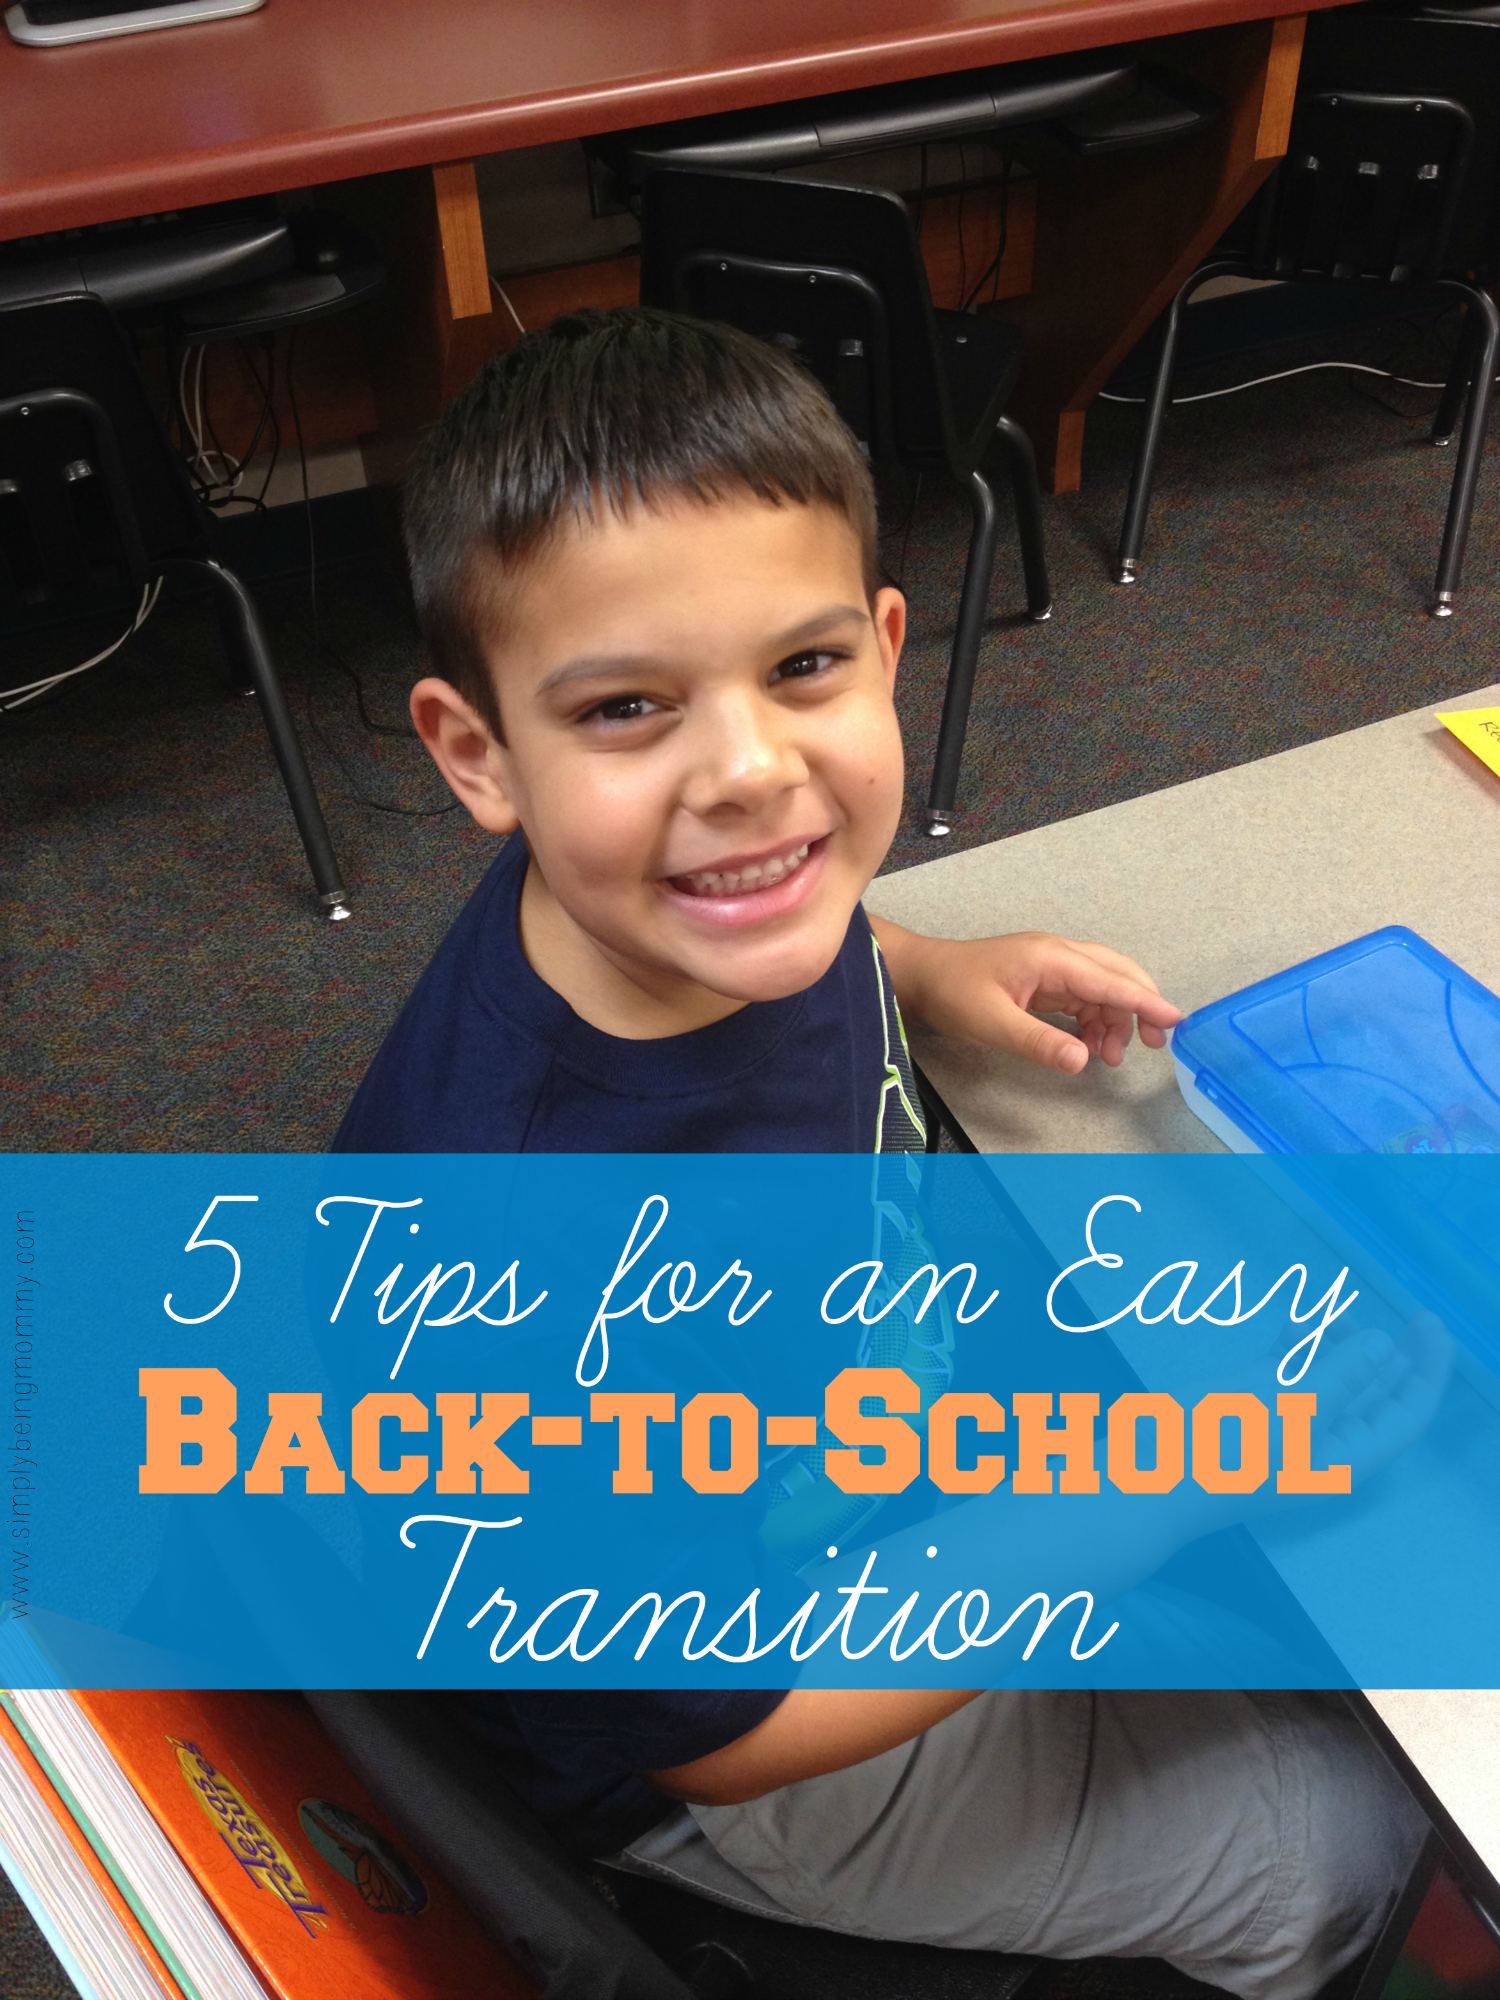 The back-to-school season is upon us. Here are 5 easy tips for an easy back-to-school transition for the little ones (and their parents).